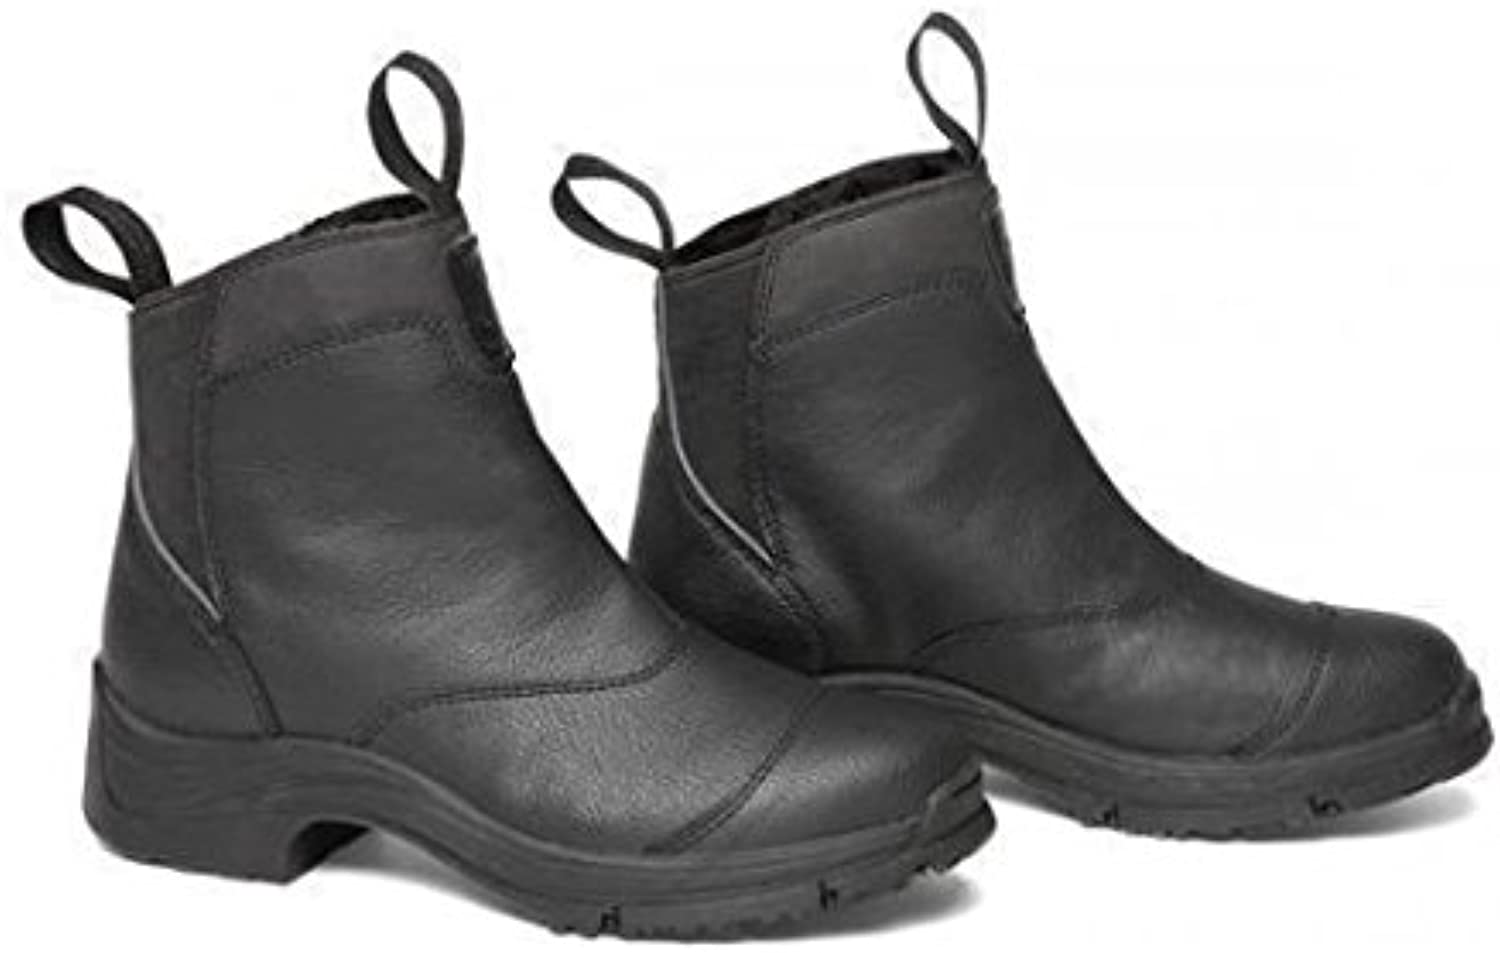 MOUNTAIN HORSE Reitschuh ACTIVE WINTER PADDOCK